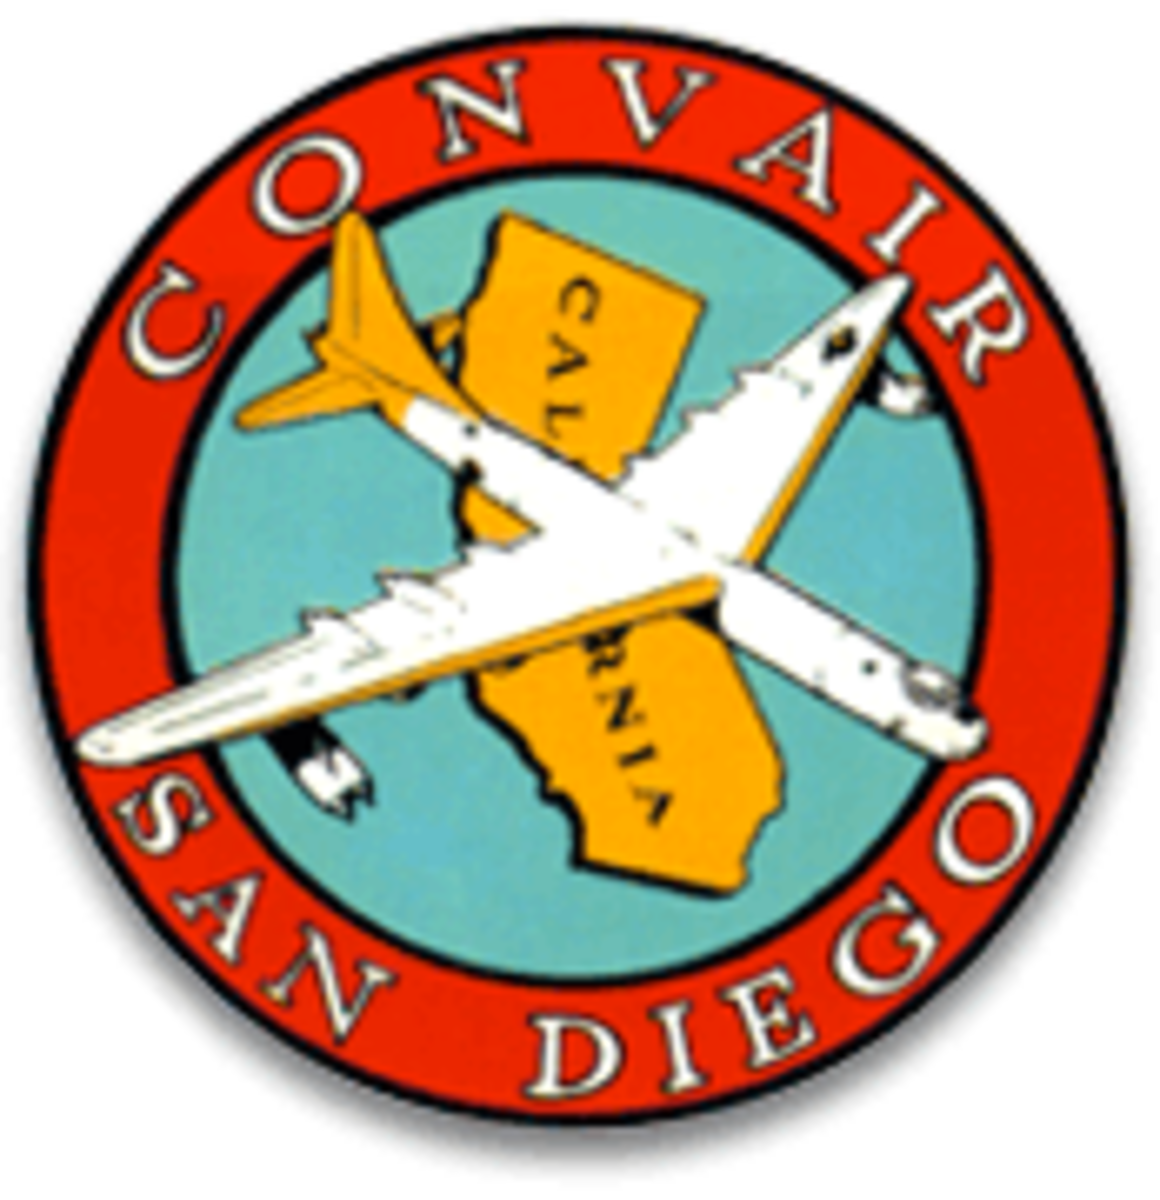 A Brief History of Convair and its Big, Fast and Innovative Aircraft: 240, 990, F-102, F-106, B-36, B-58 and More.